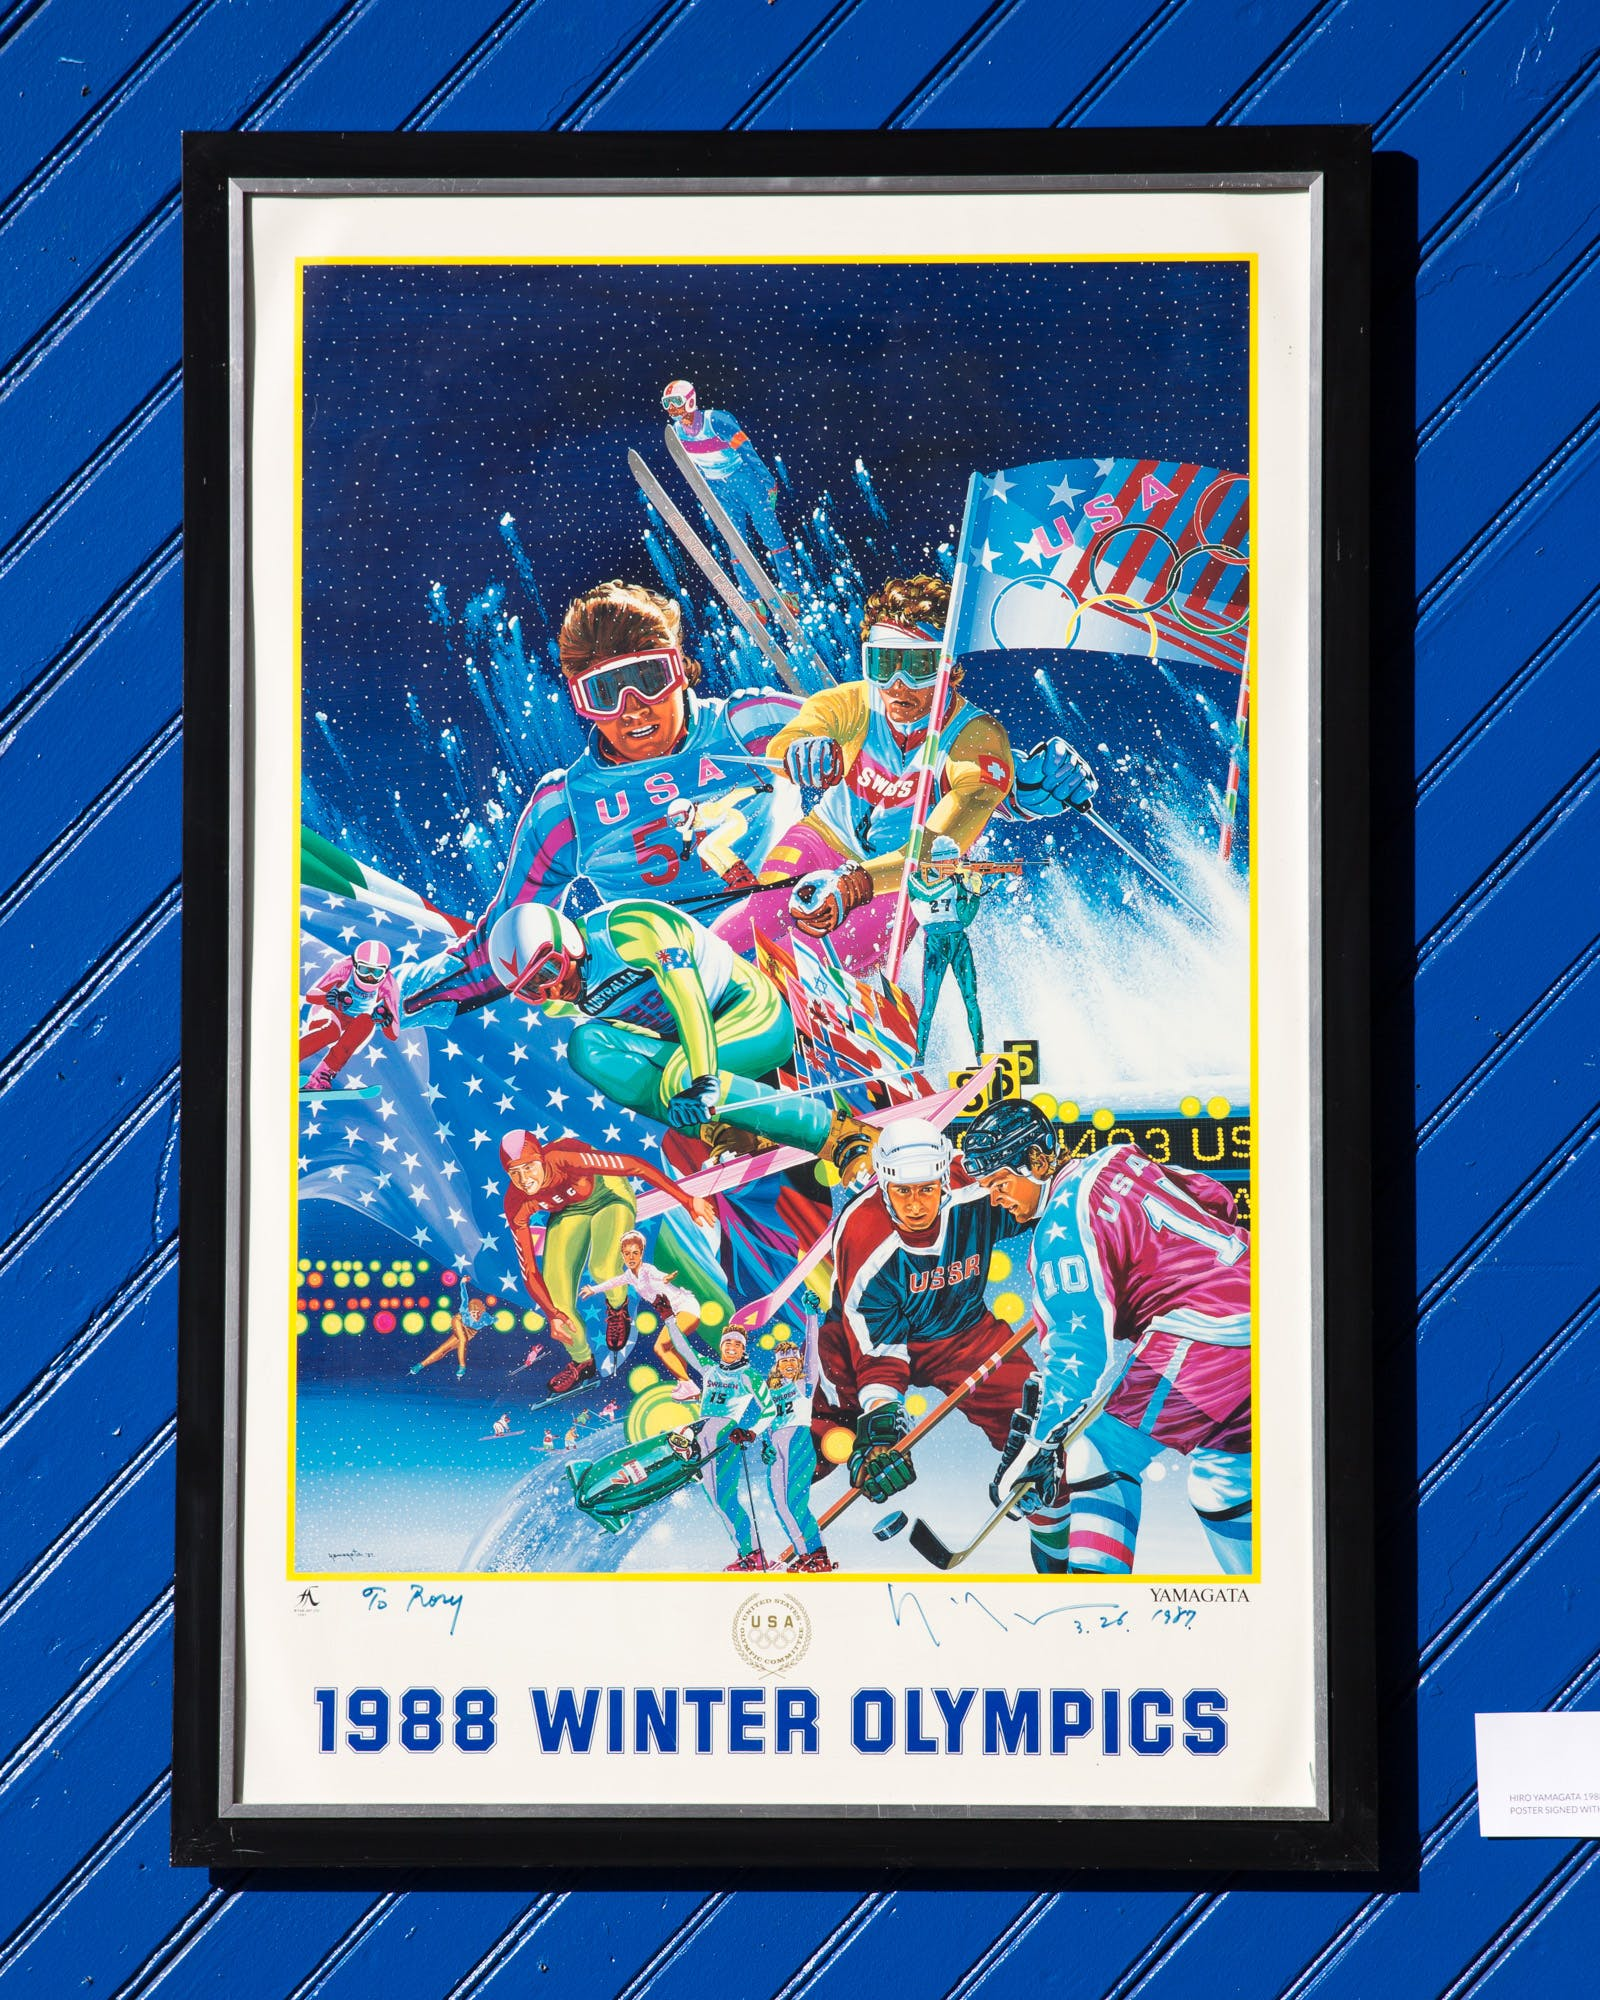 1988 Winter Olympics Ltd Ed Poster Signed With